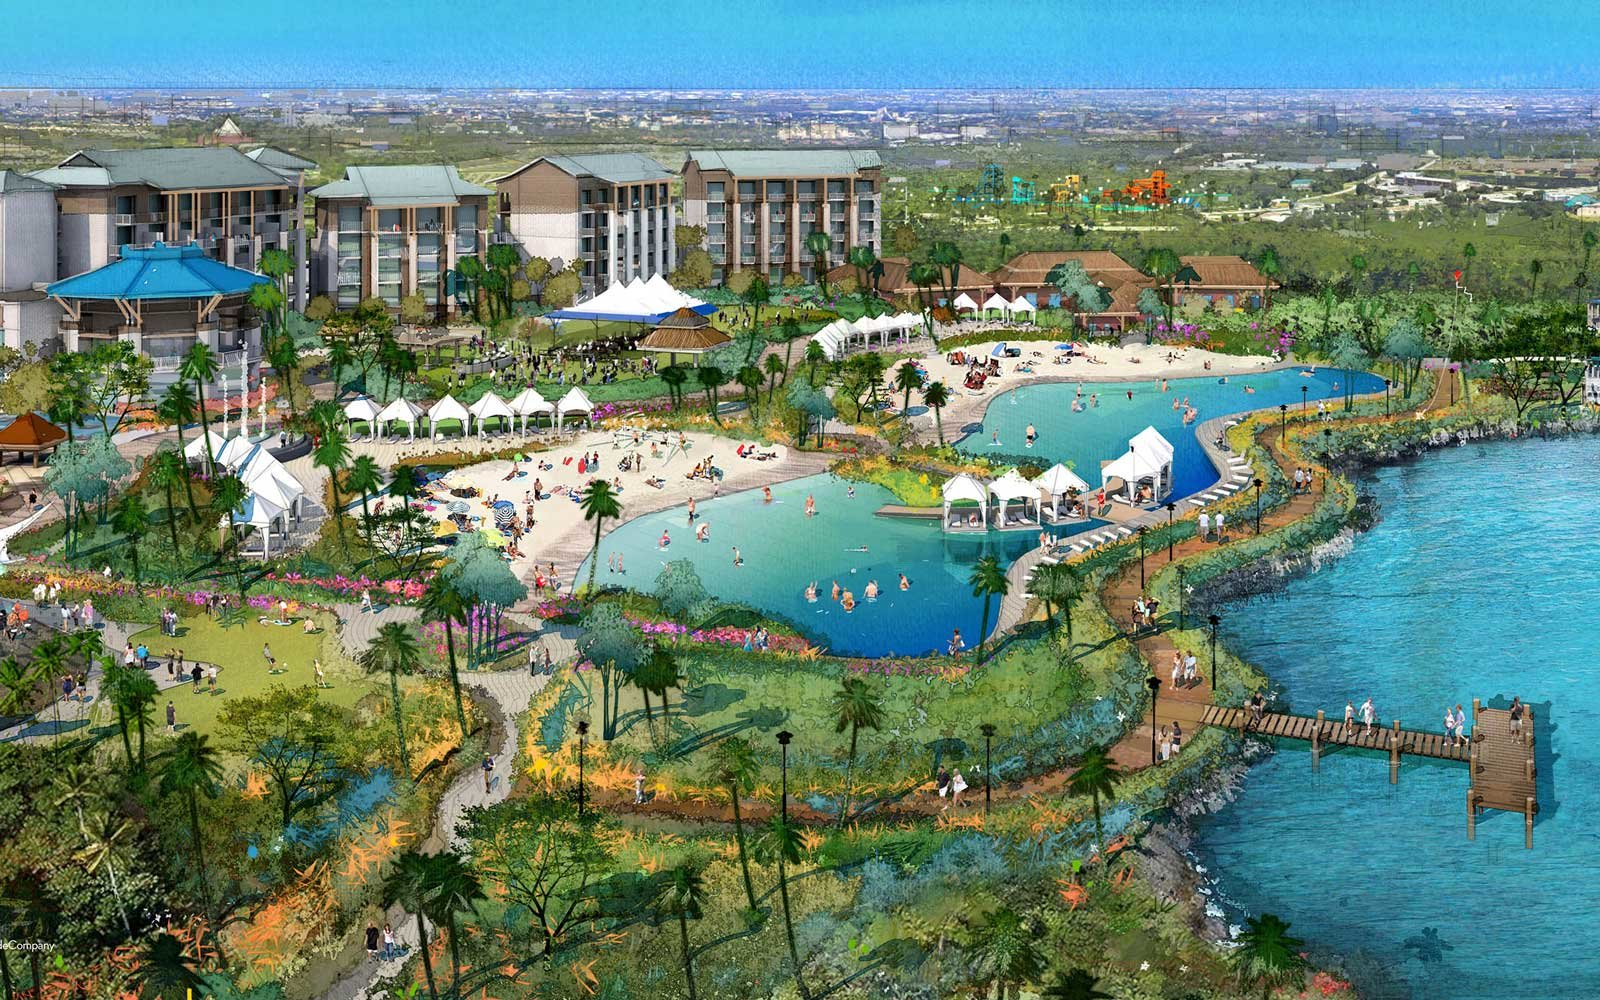 Jimmy Buffett's New Margaritaville Orlando Resort Will Open